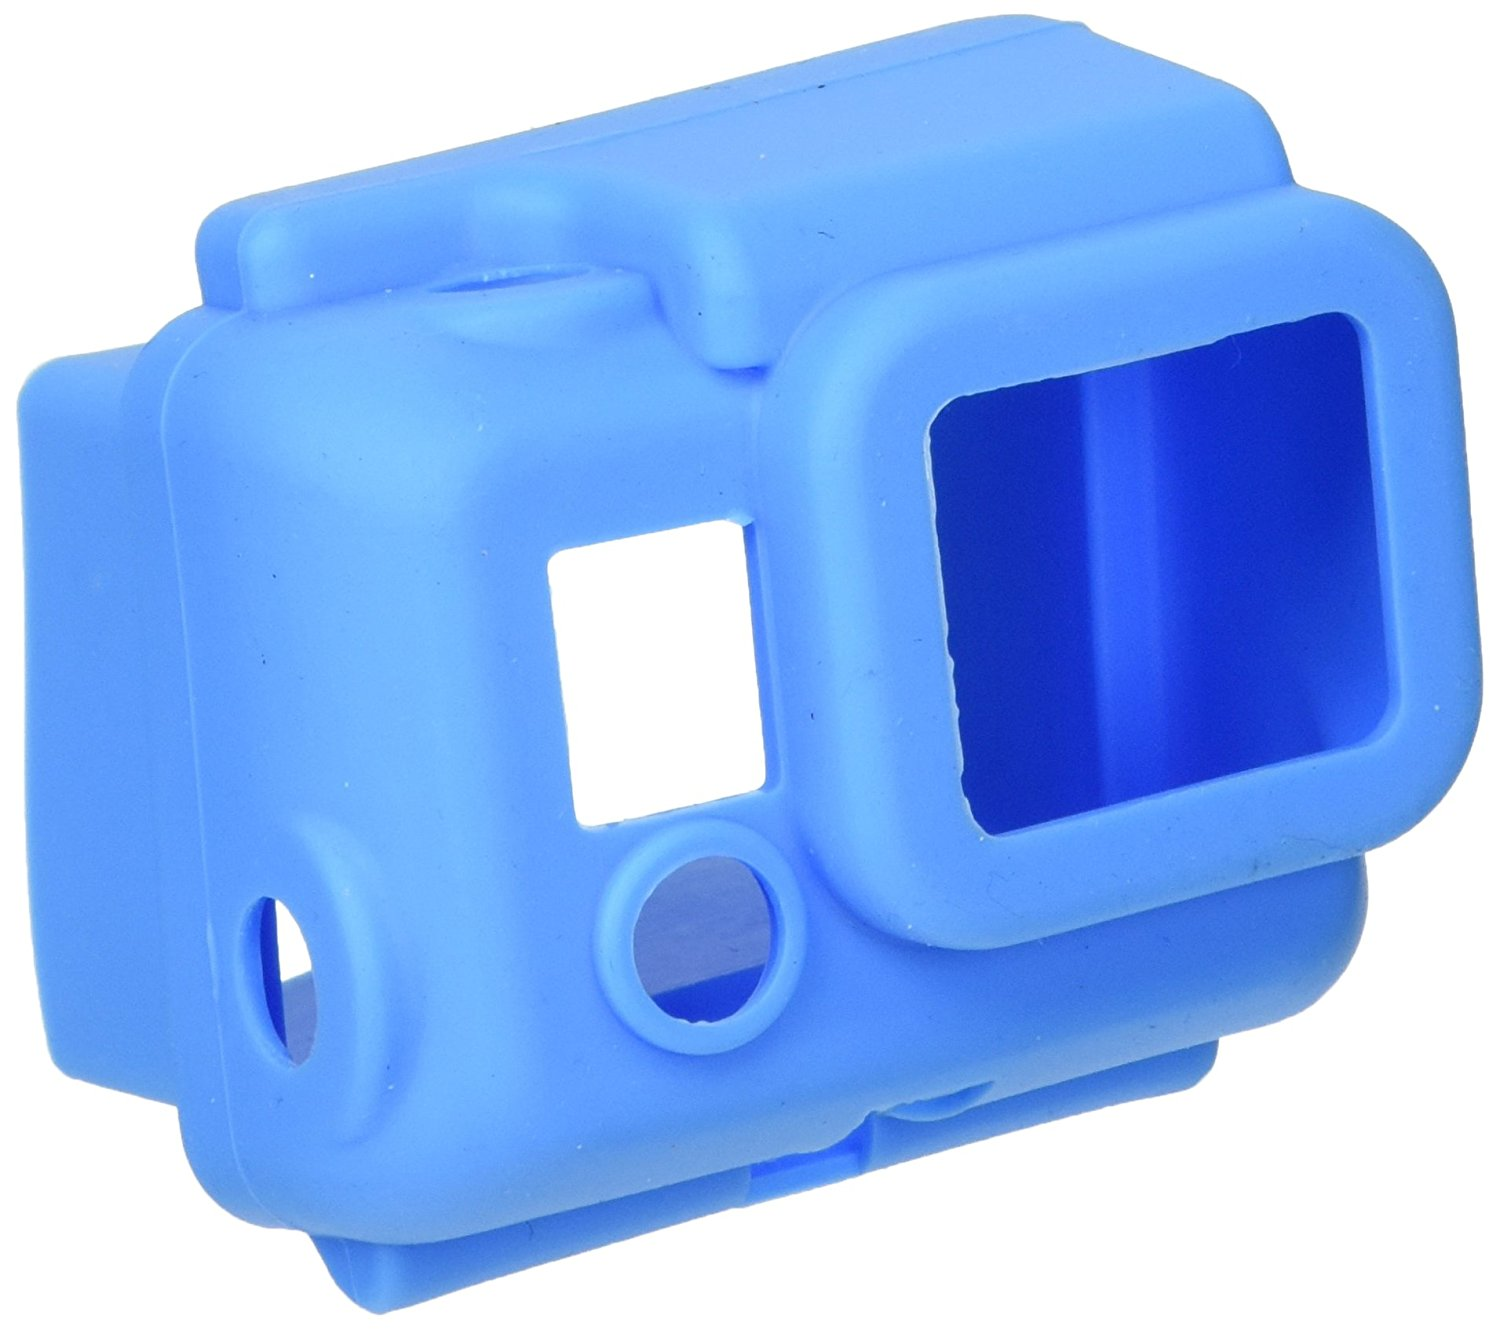 NEEWER® Blue Dustproof Gel Silicone Cover Case for GoPro Hero 3 Camera